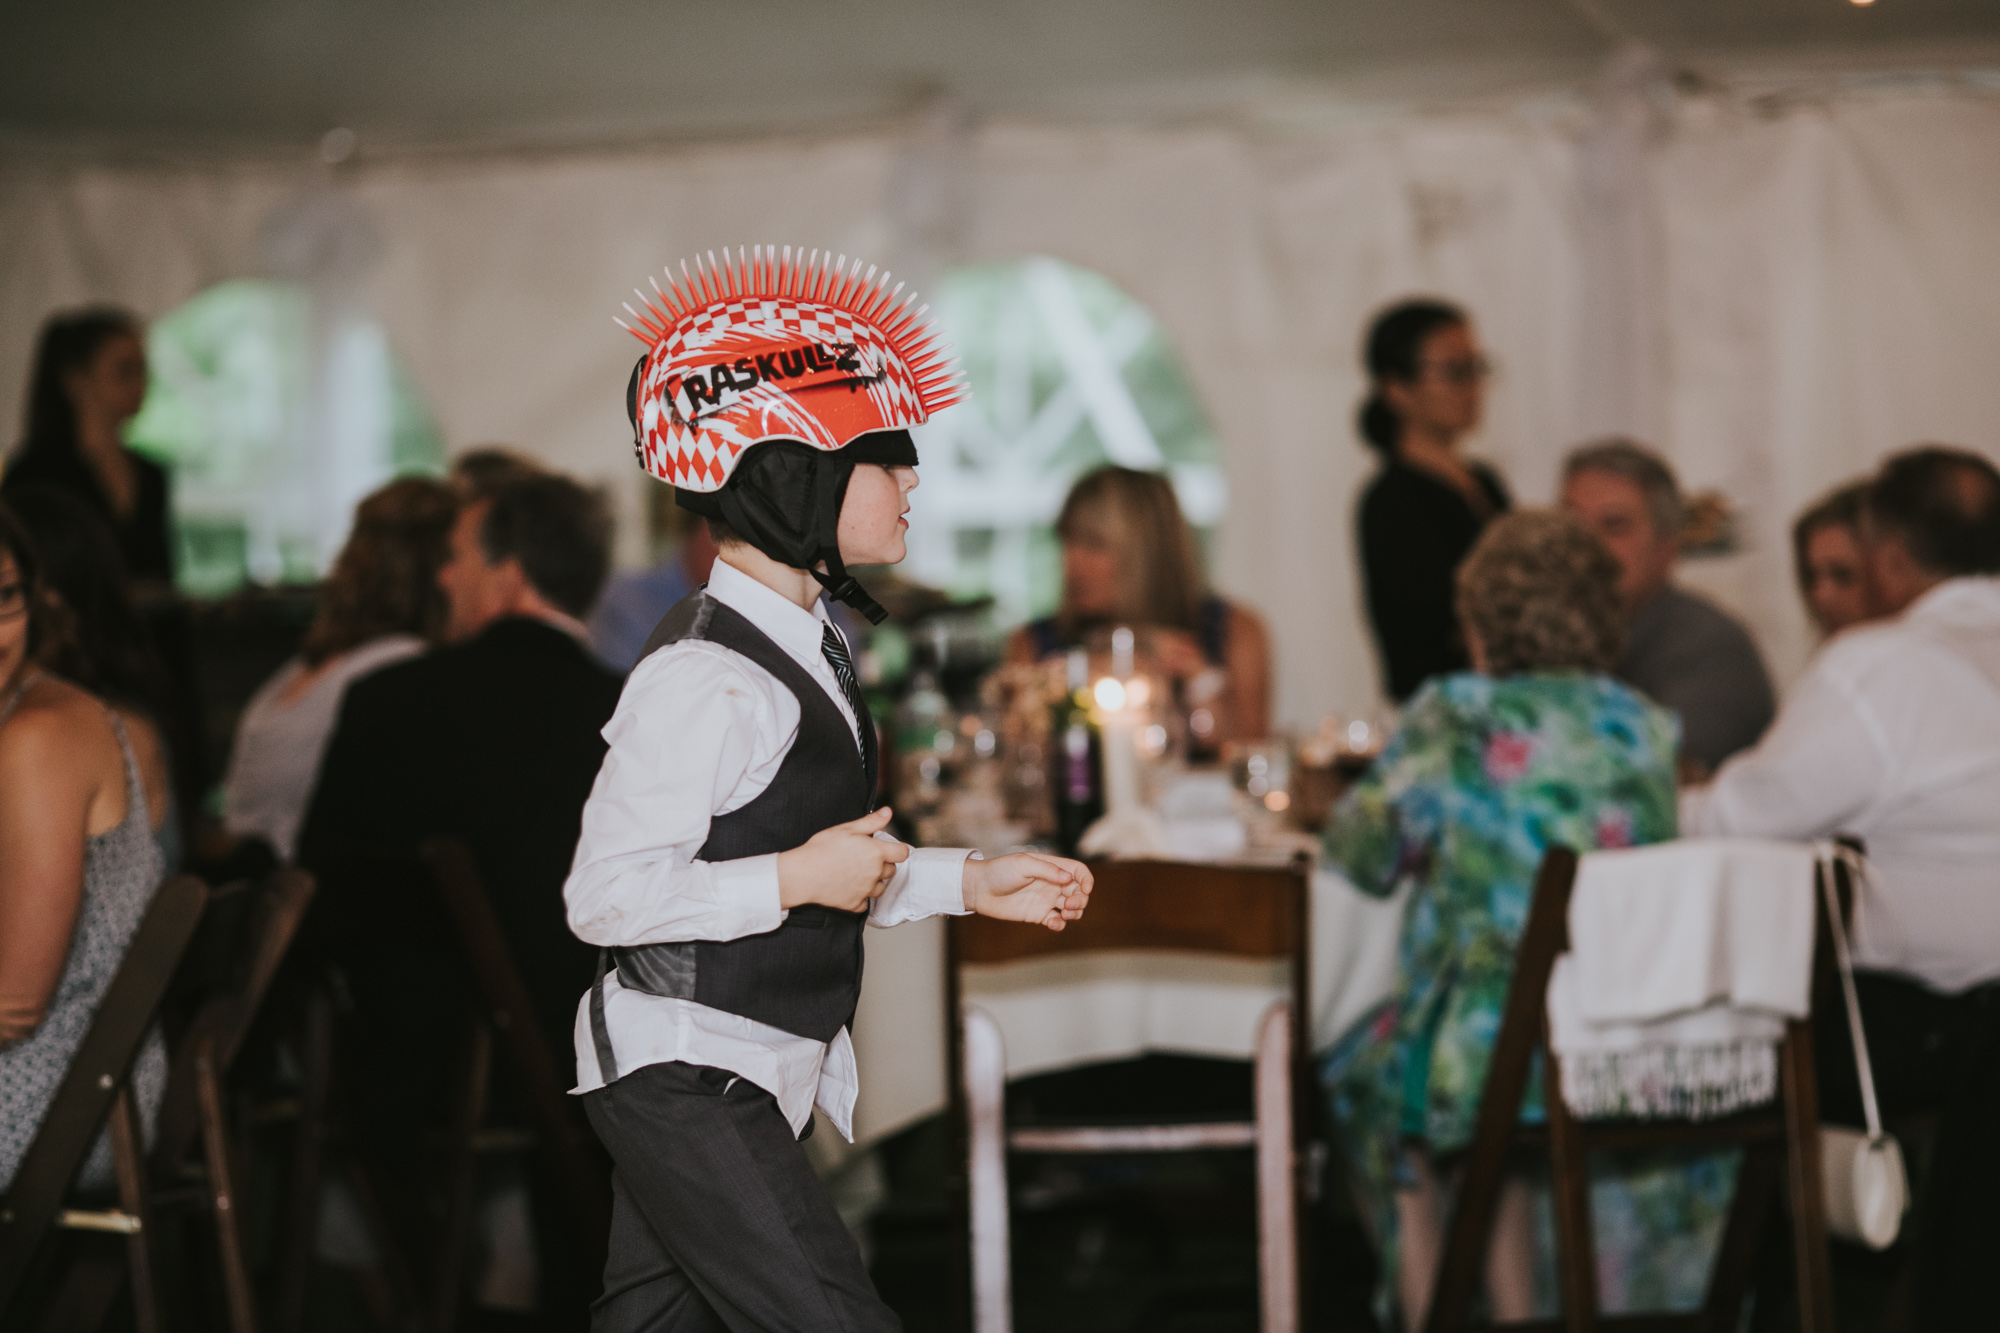 kid-at-wedding-wearing-mohawk-helmet-dancing